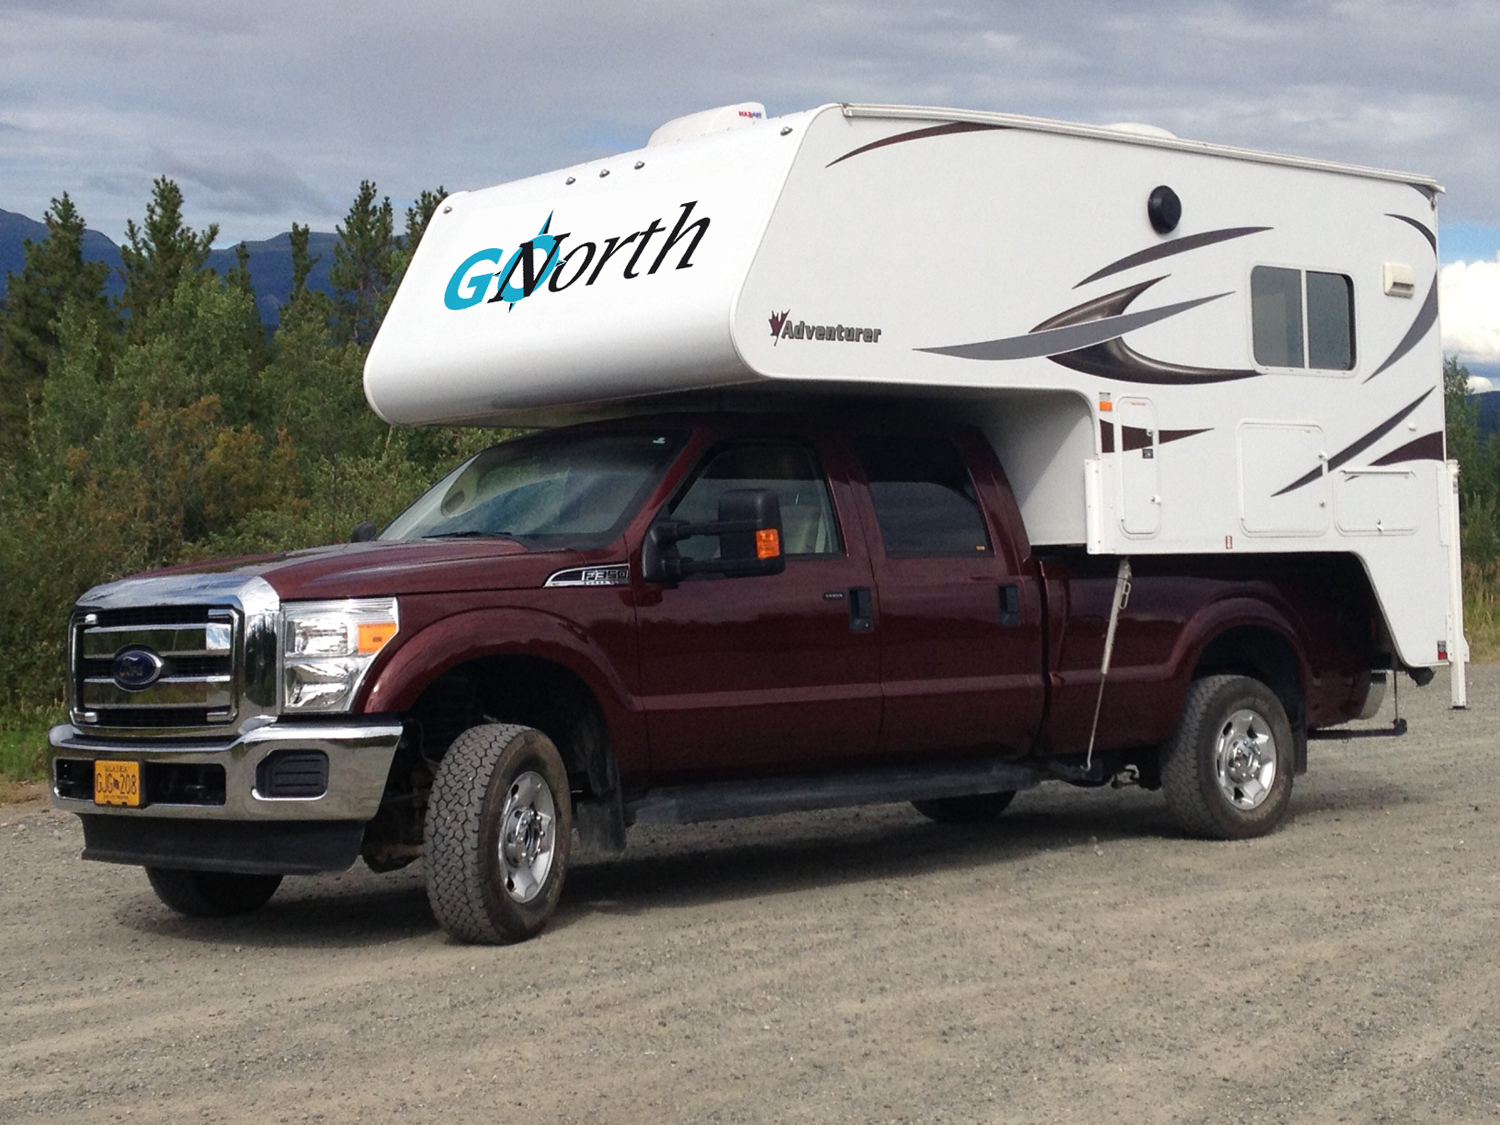 Gonorth Alaska Review Compare Prices And Book